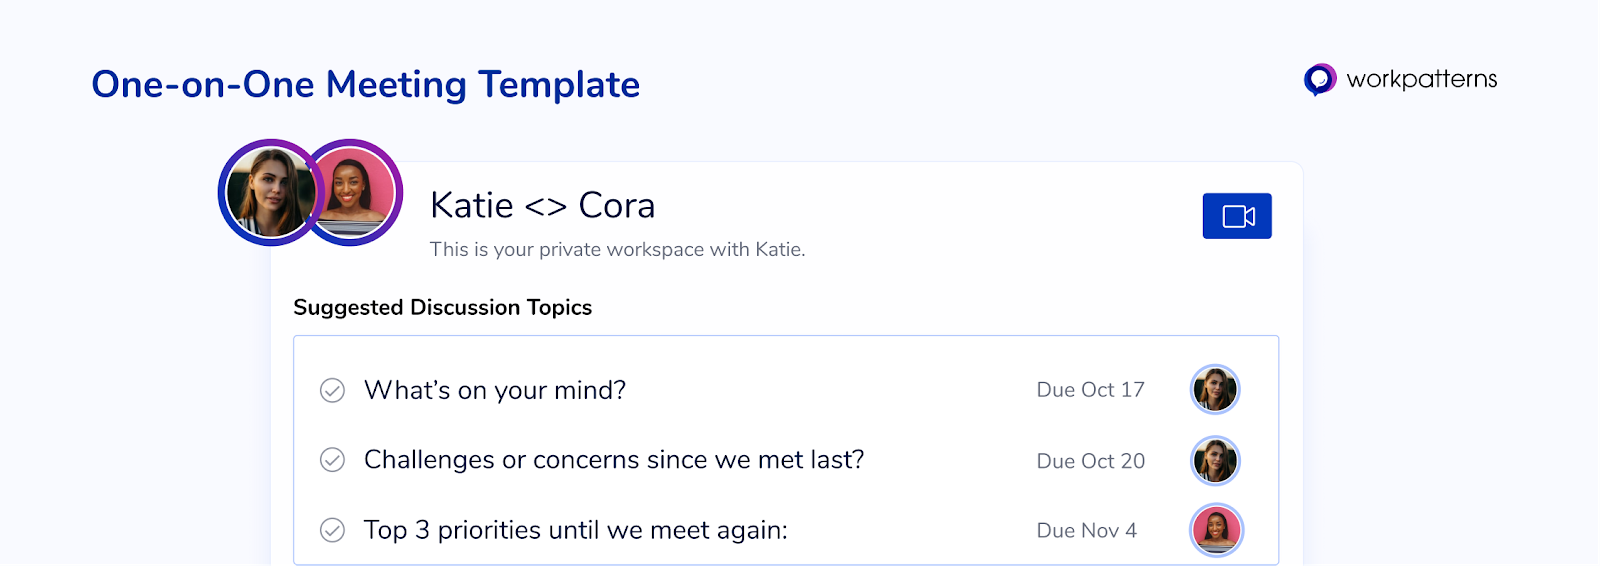 One on one meeting template in WorkPatterns the people management app